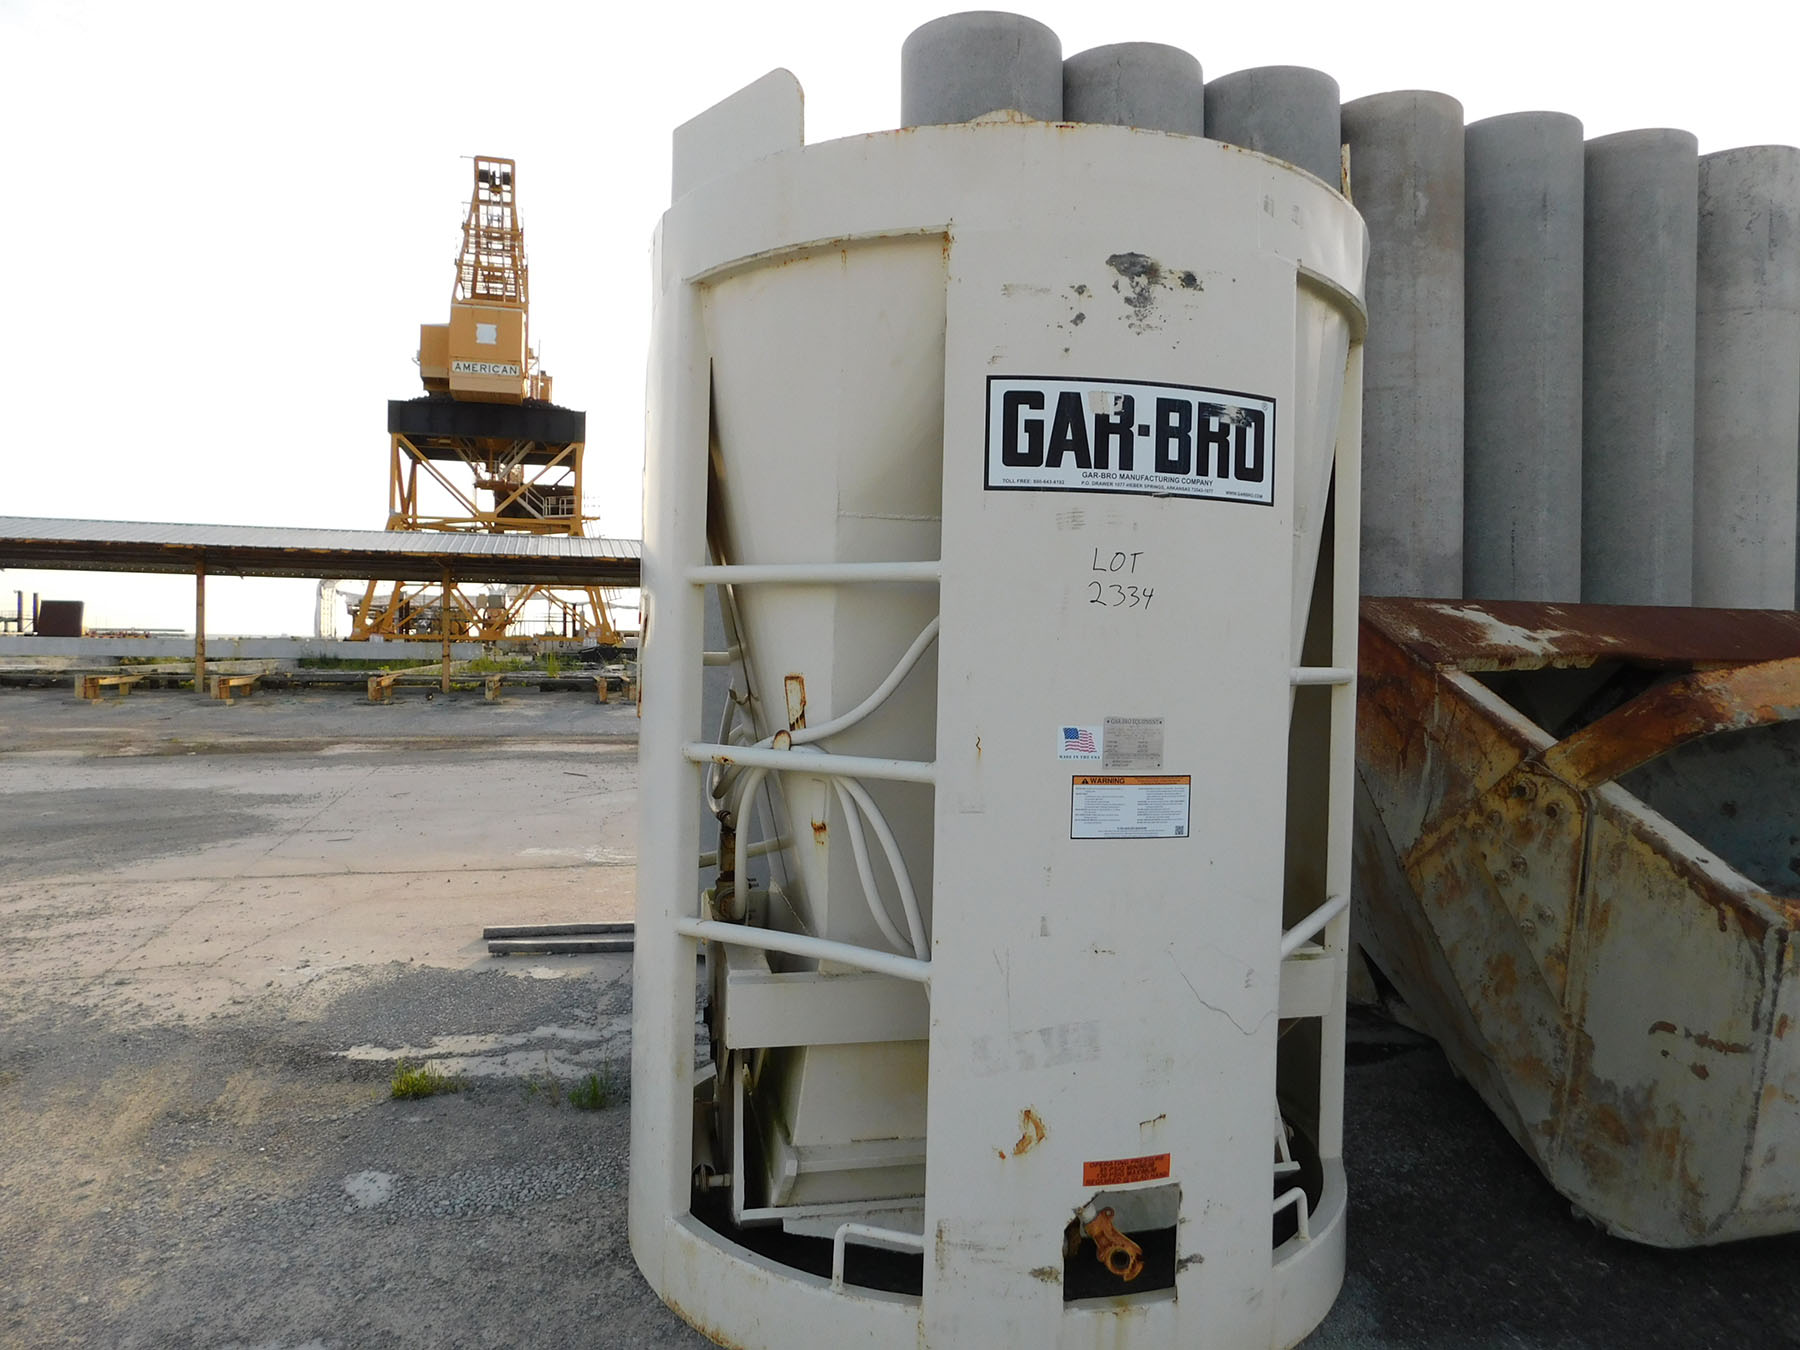 Lot 2334 - GAR-BRO EQUIPMENT CONCRETE BUCKET; MAX WEIGHT 27,500 LBS., YEAR 2015